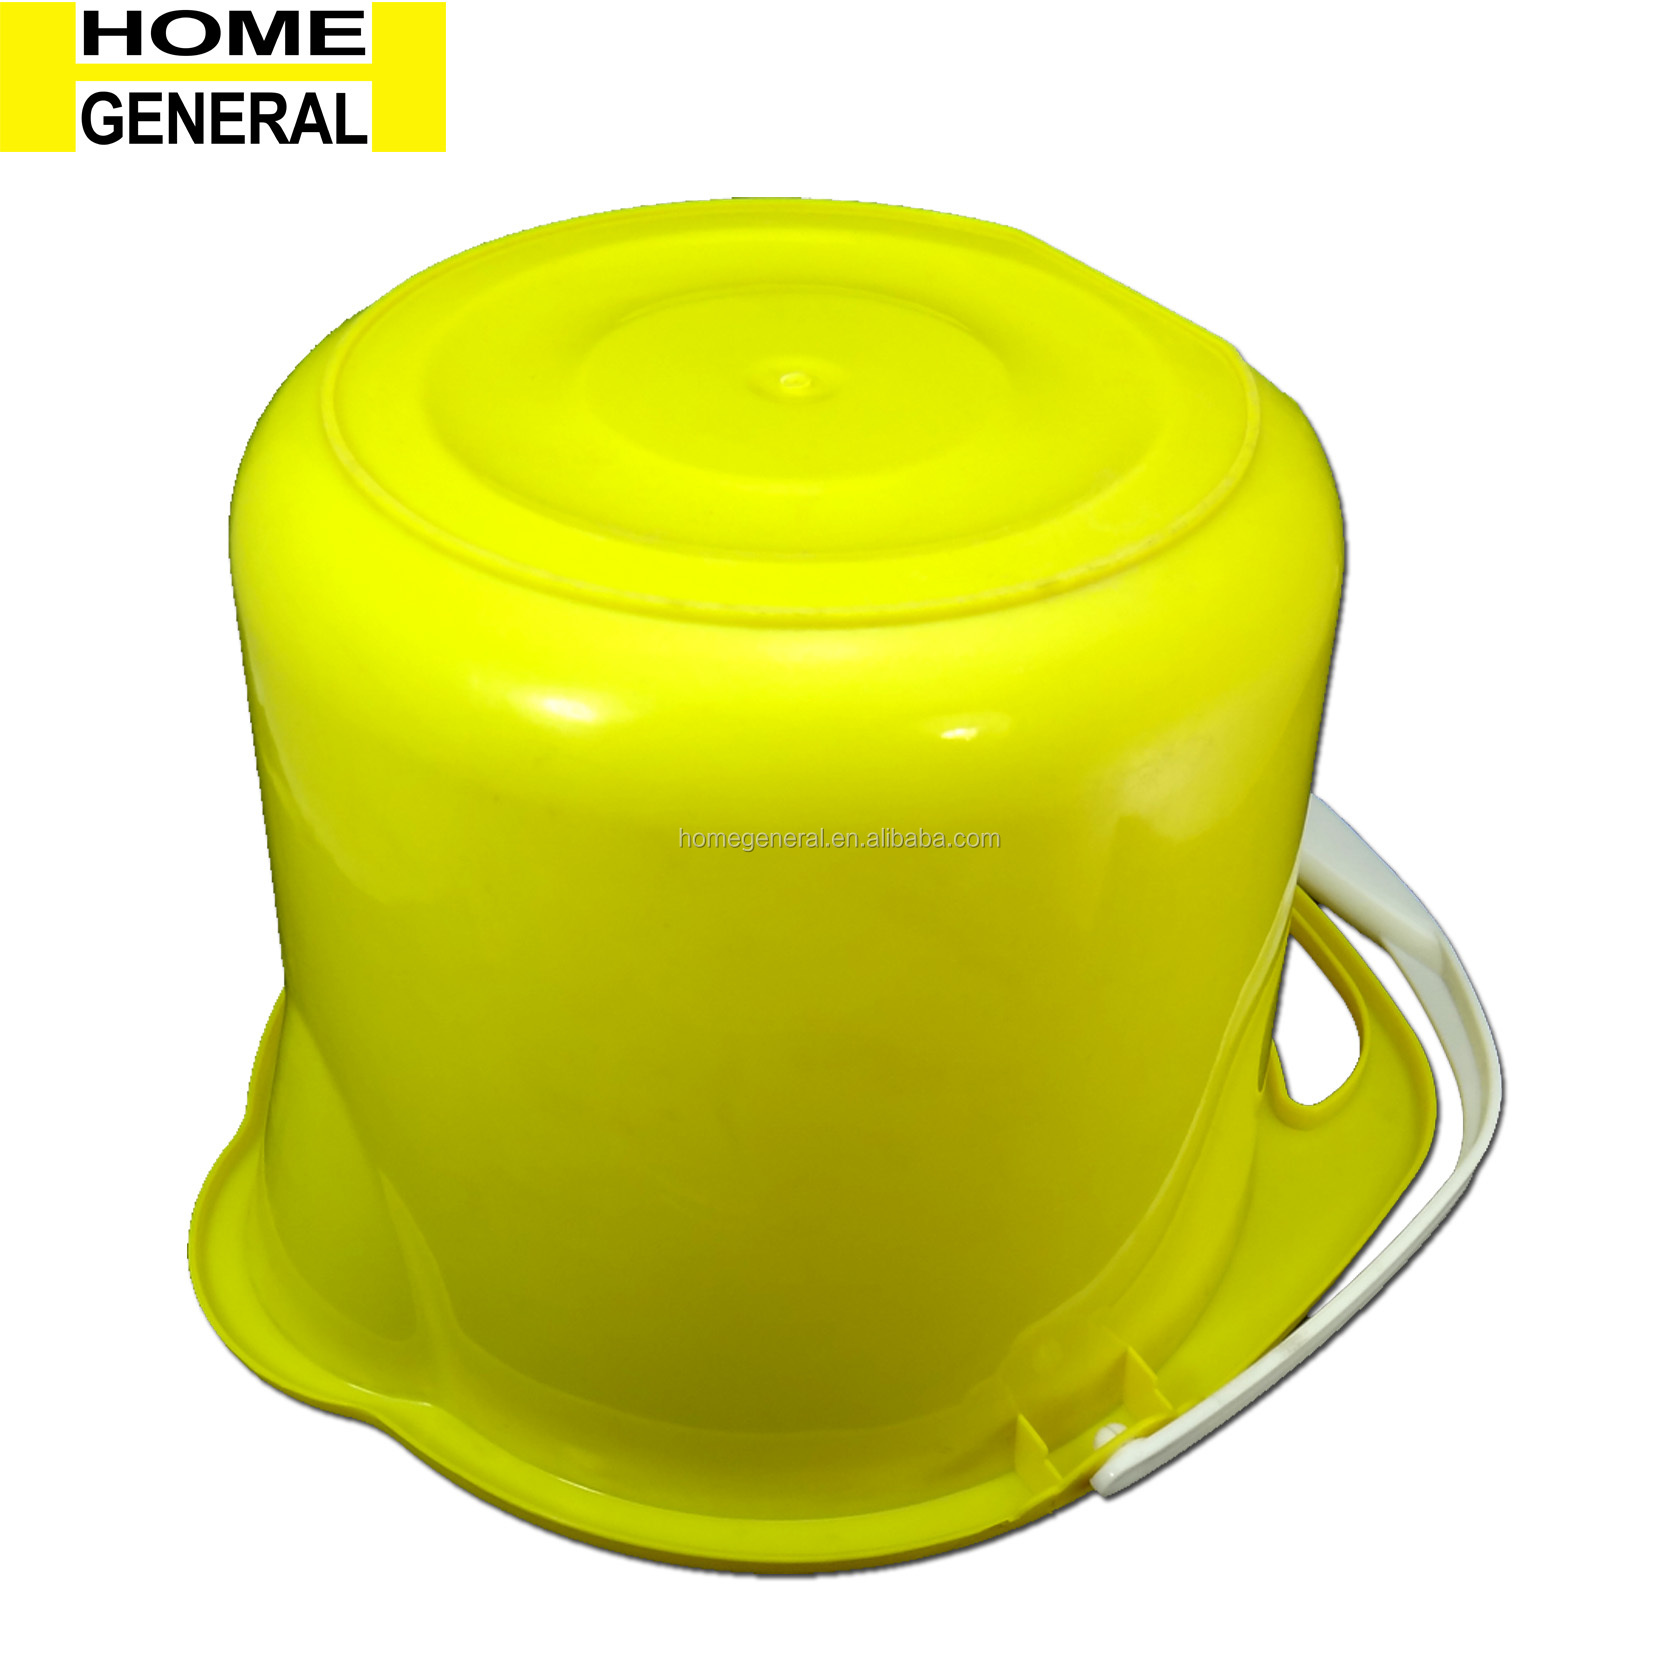 BUCKET GENERAL PLASTIC CLEAN UP BUCKET PLASTIC BUCKET WITH HANDLE